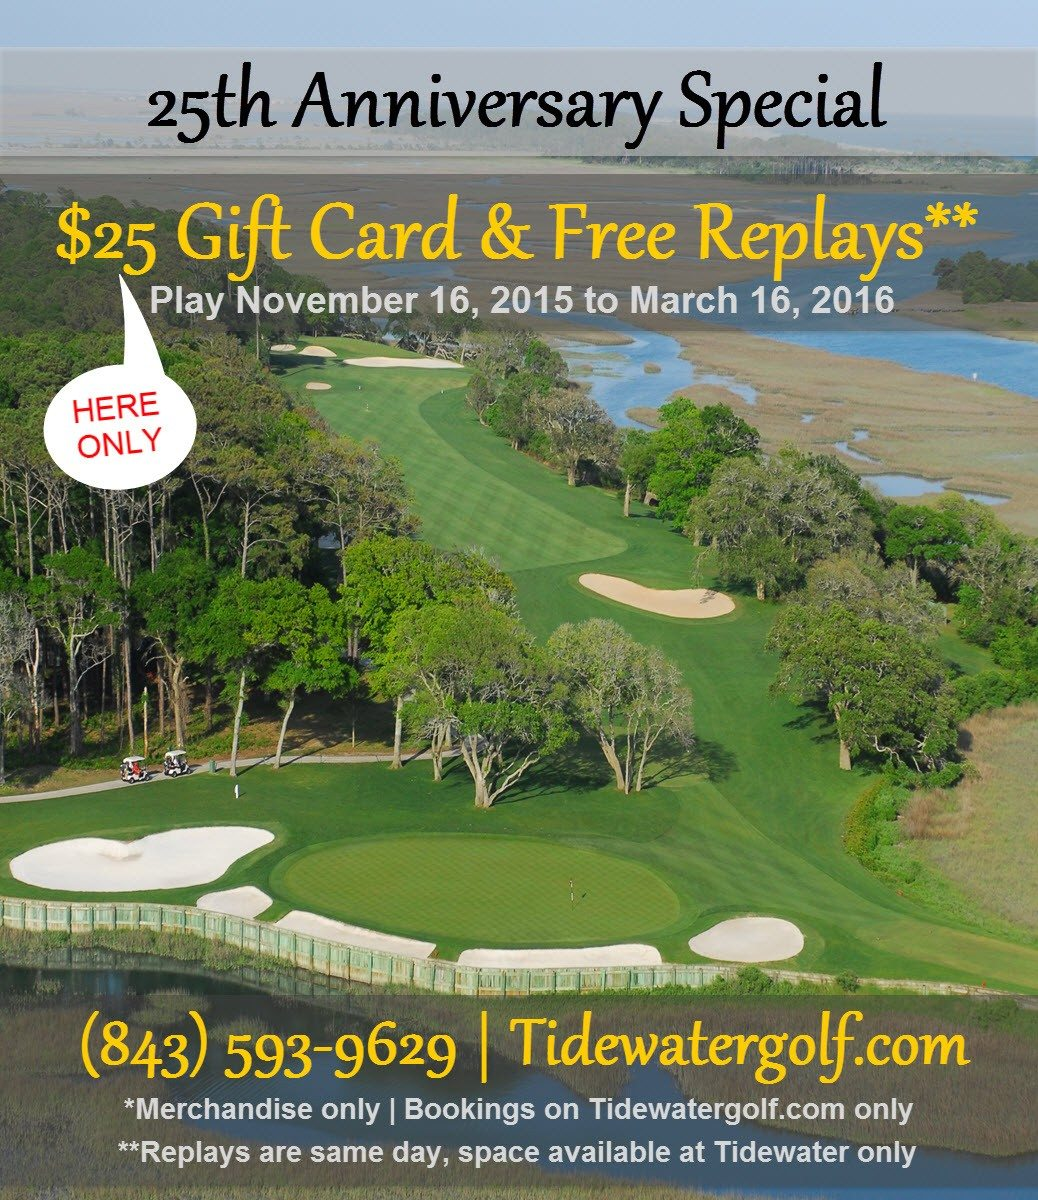 25th anniversary golf special Nov 16 to Mar 16 2016